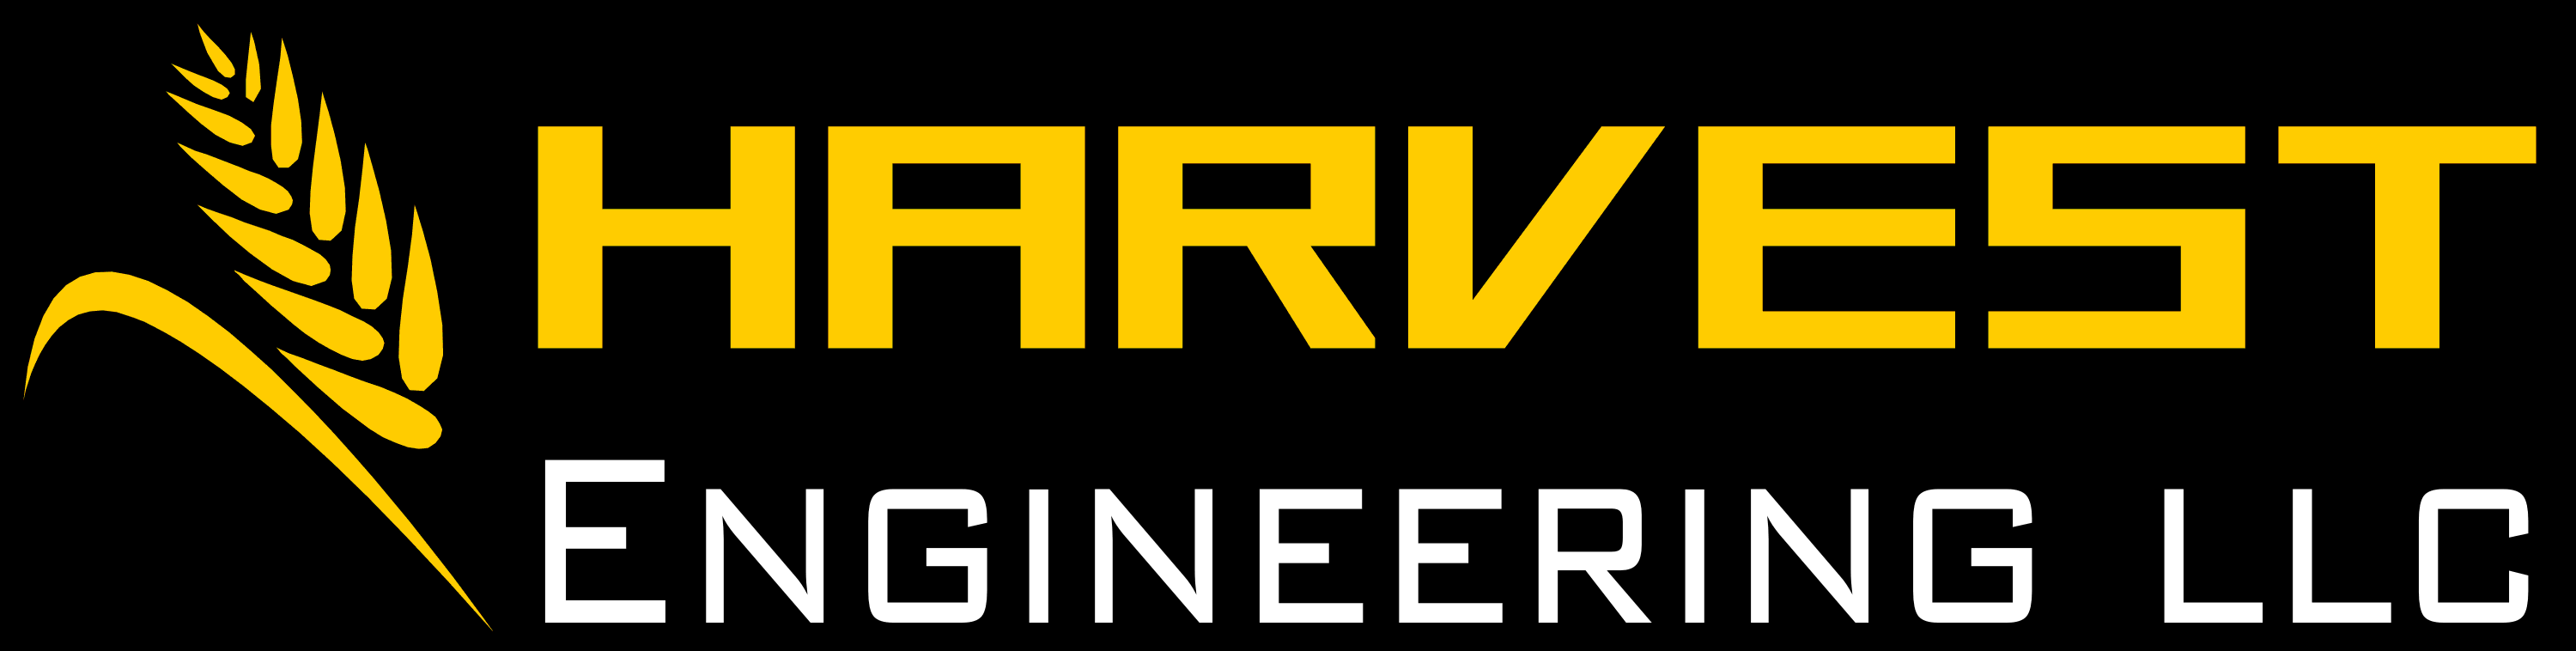 Harvest Engineering LLC. Masterhead Logo